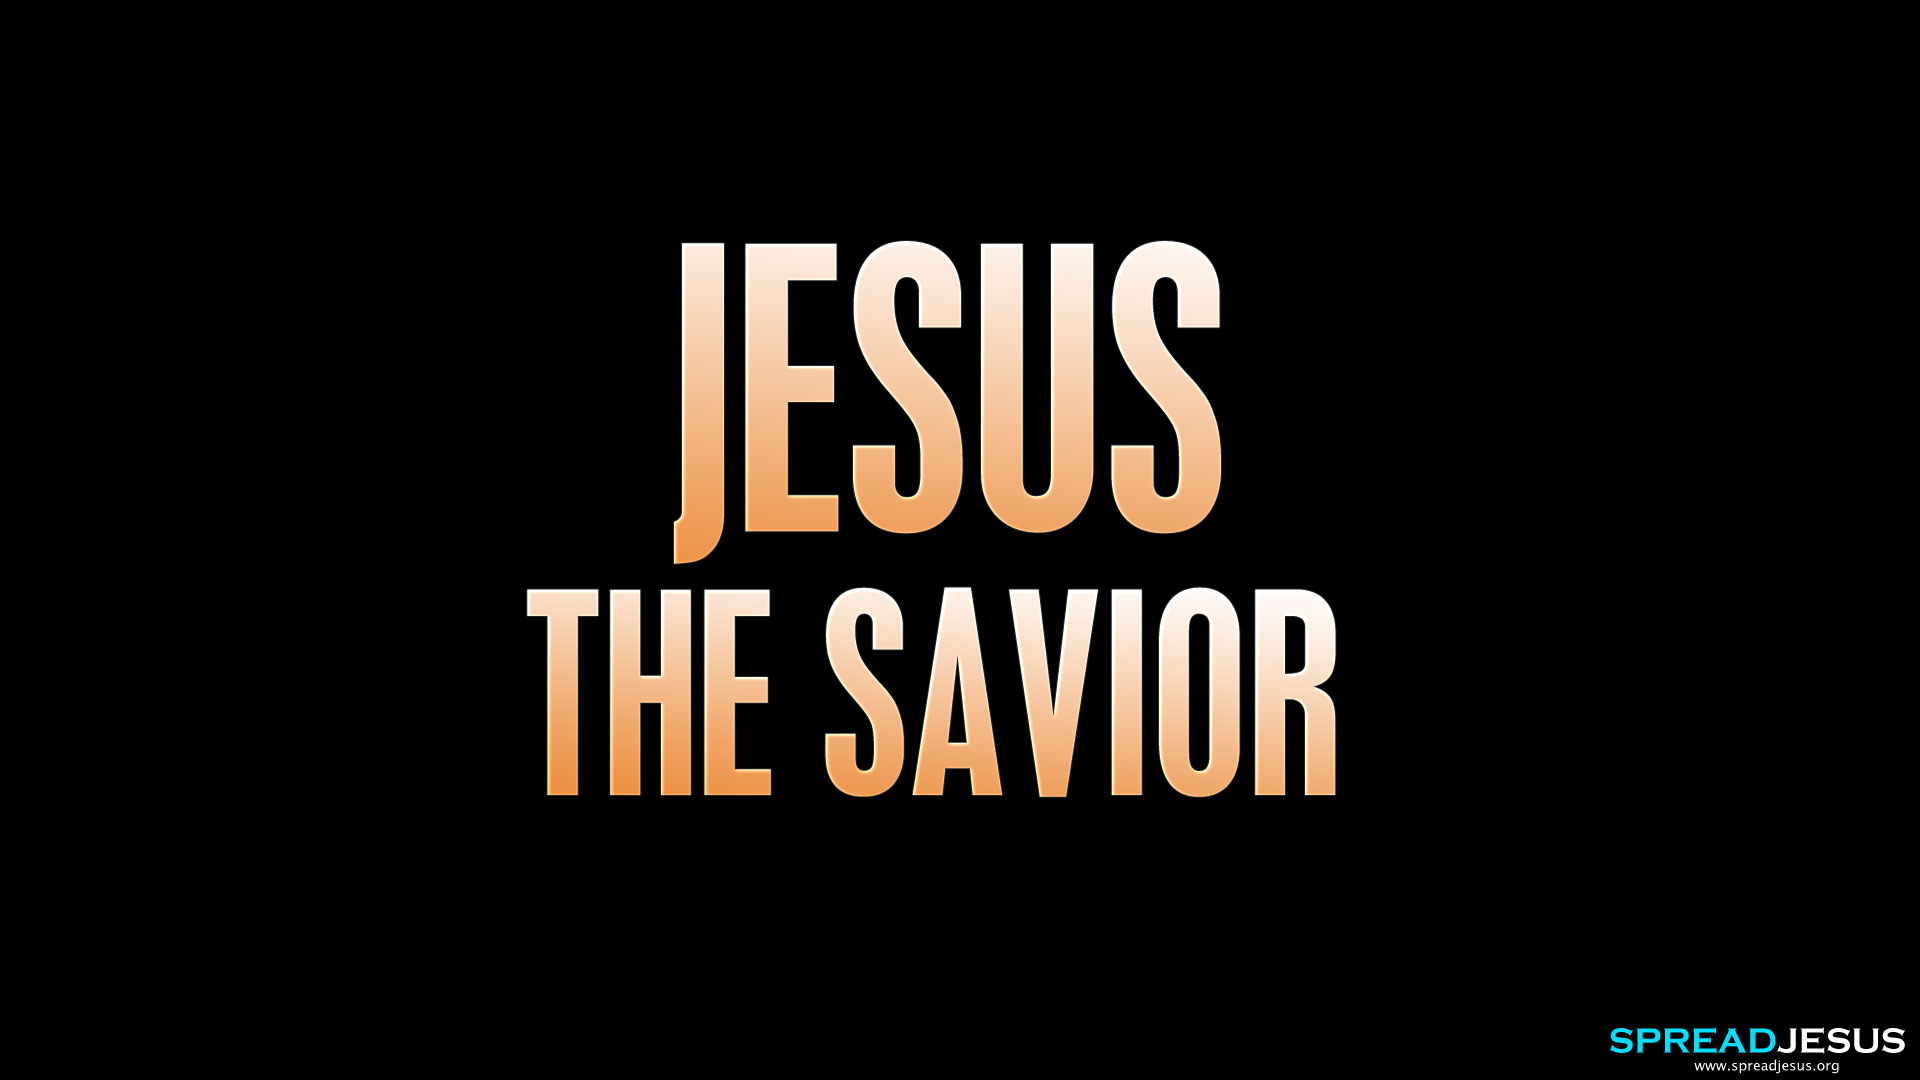 Jesus Christ HD wallpapers free download:Jesus The Savior Jesus Christ HD wallpaper 6 free download:Jesus christ Backgrounds ,christian backgrounds wallpapers HD